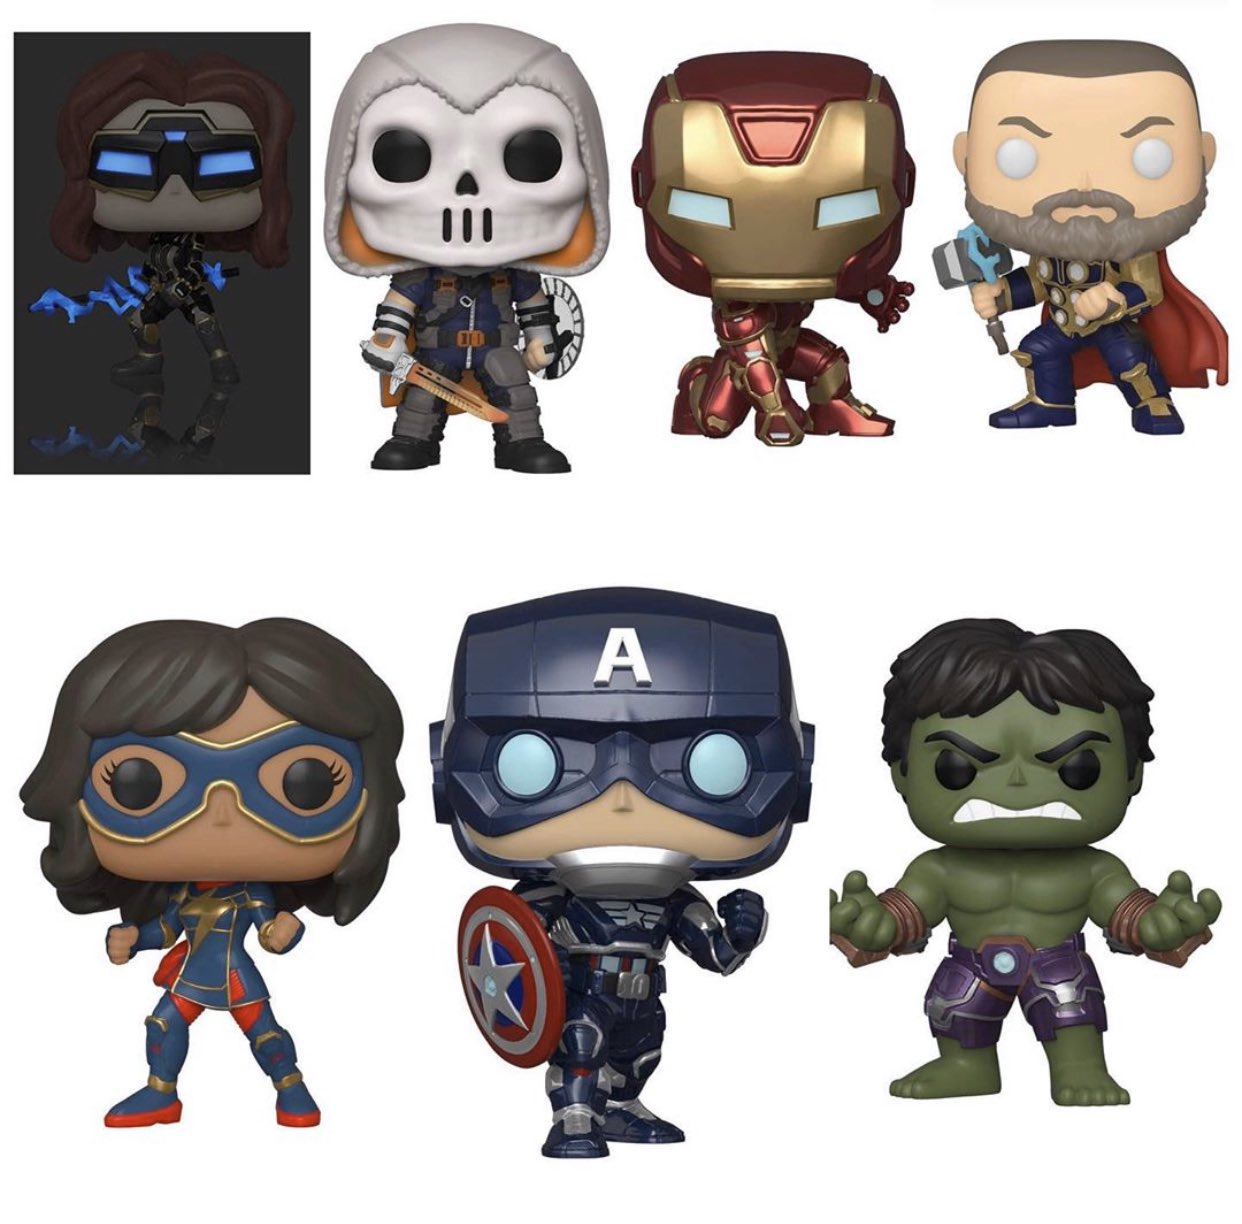 avengers game funko, Marvel's Avengers Game Funko Figures Revealed, Features Stark Tech Designs, MP1st, MP1st